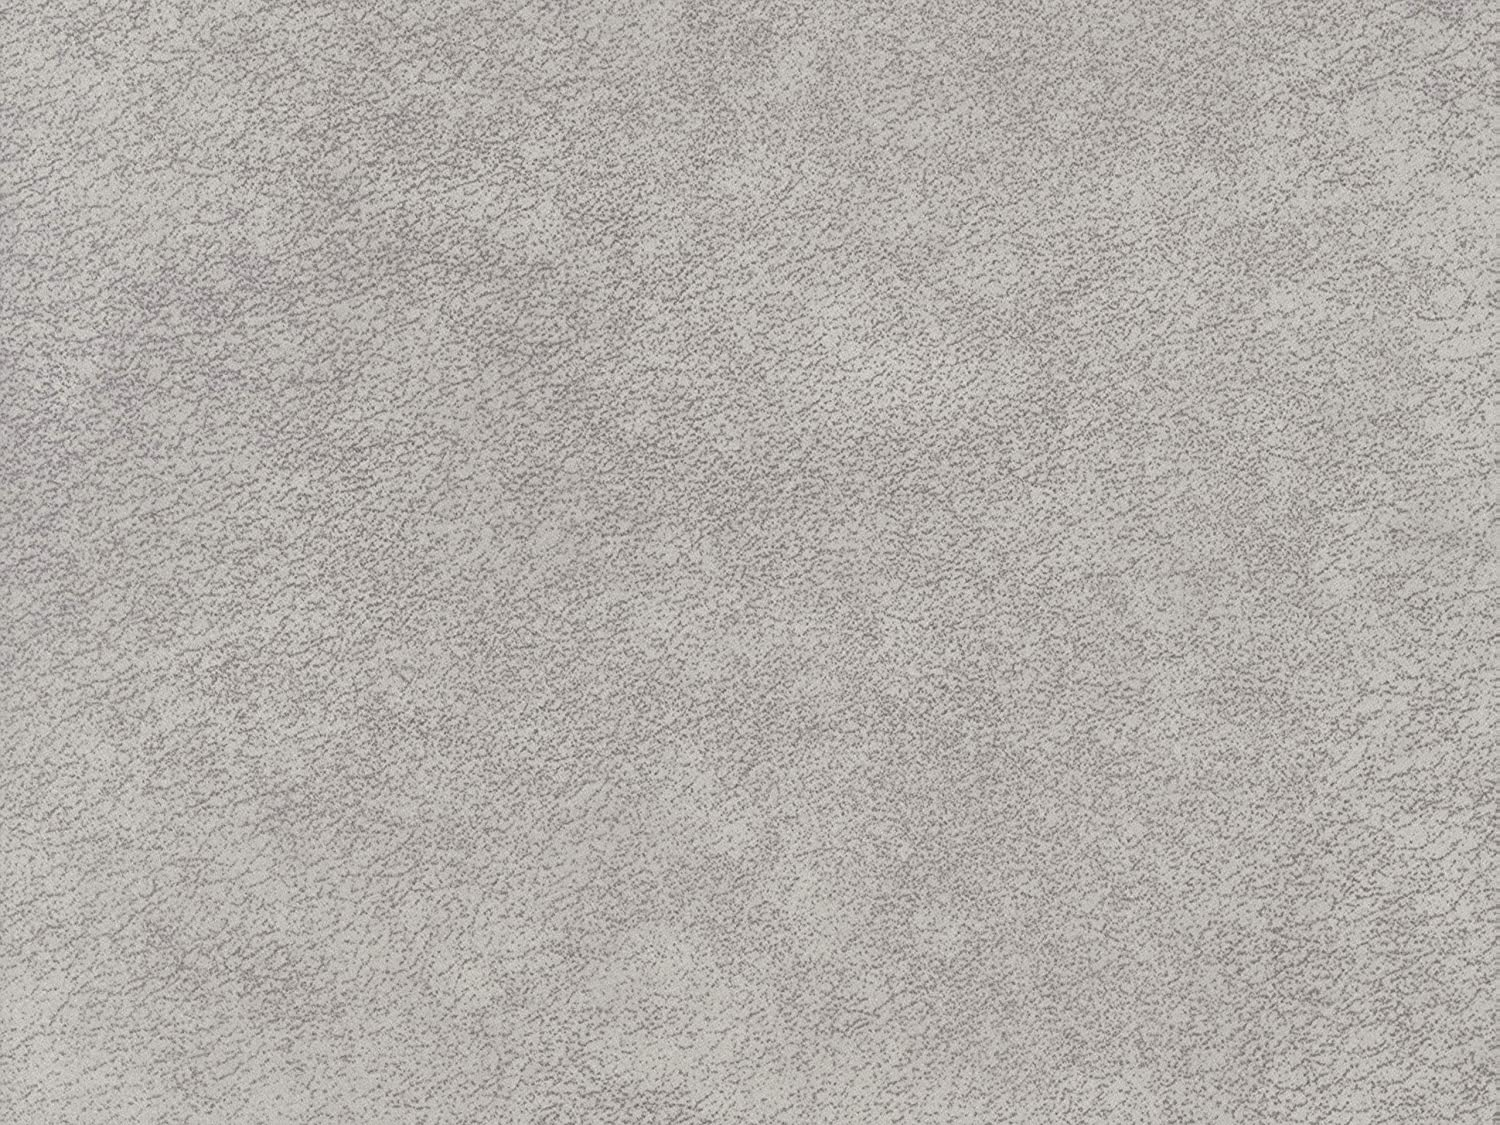 Amazon.com: Marina 102 Conch Brindle Upholstery Fabric by ...